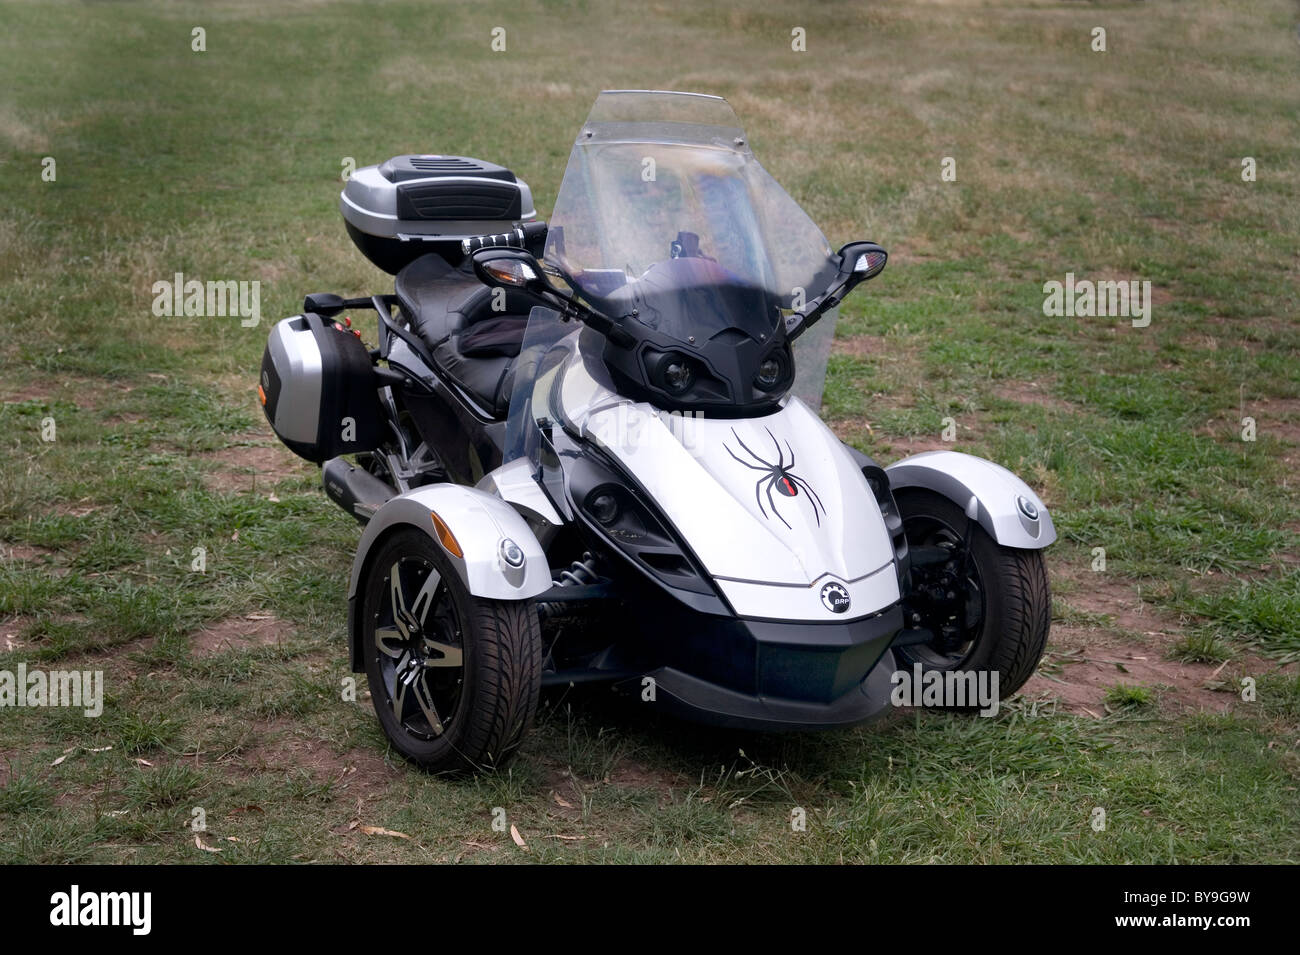 Brp can am spyder roadster three wheeled vehicle stock image